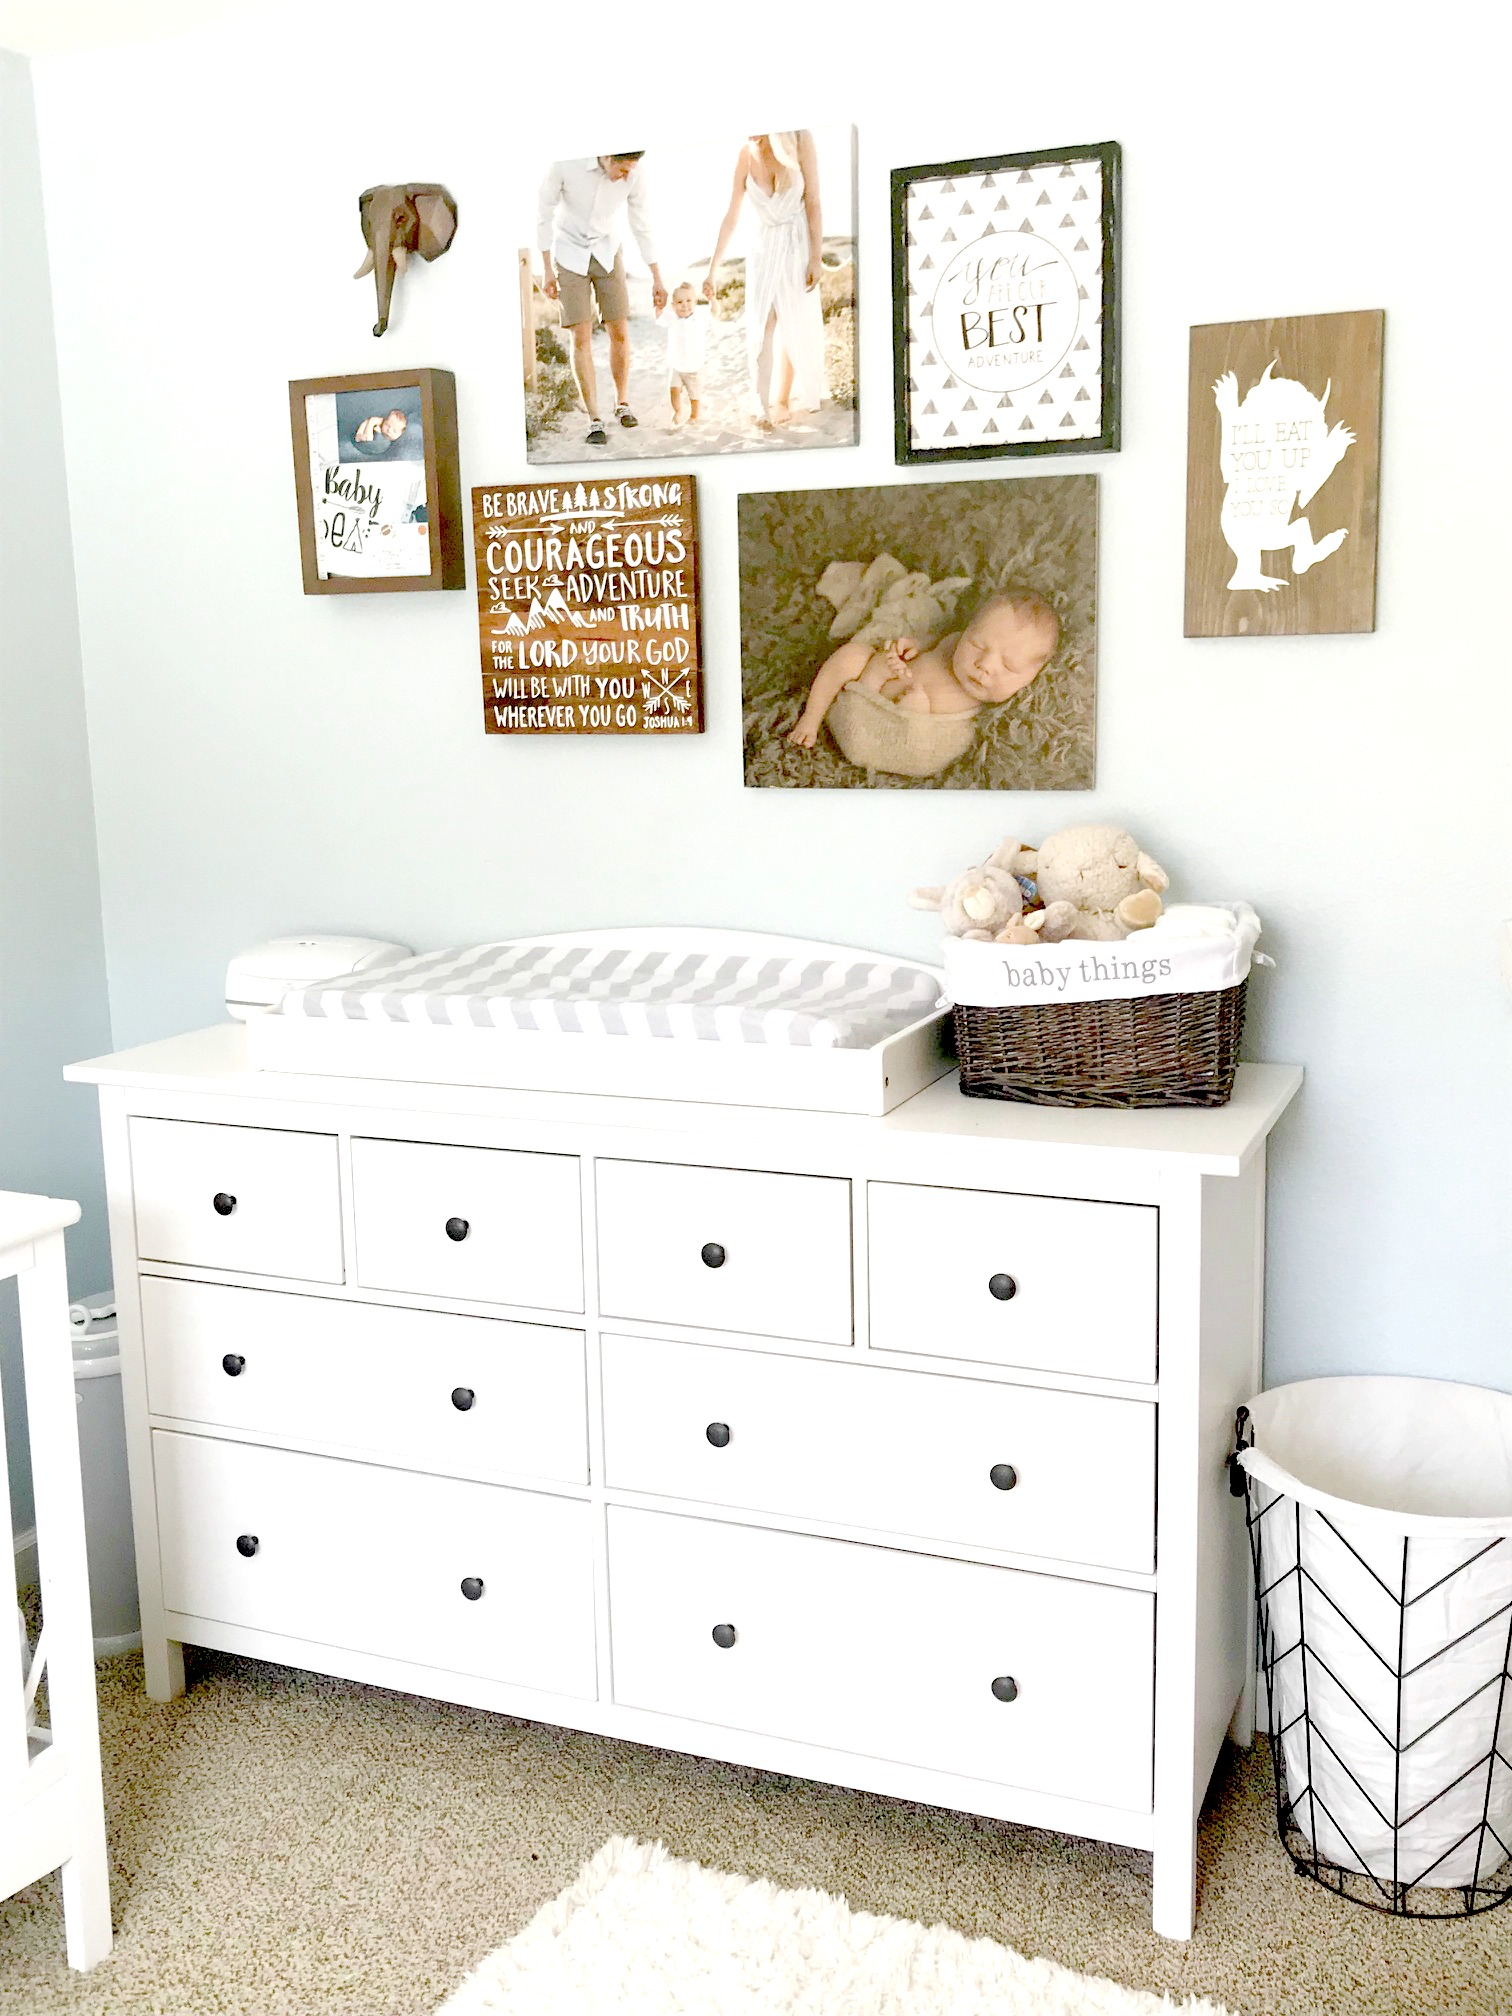 baby boy nursery, baby nursery, baby nursery ideas, nursery ideas, baby boy nursery ideas, changing table, nursery photo wall